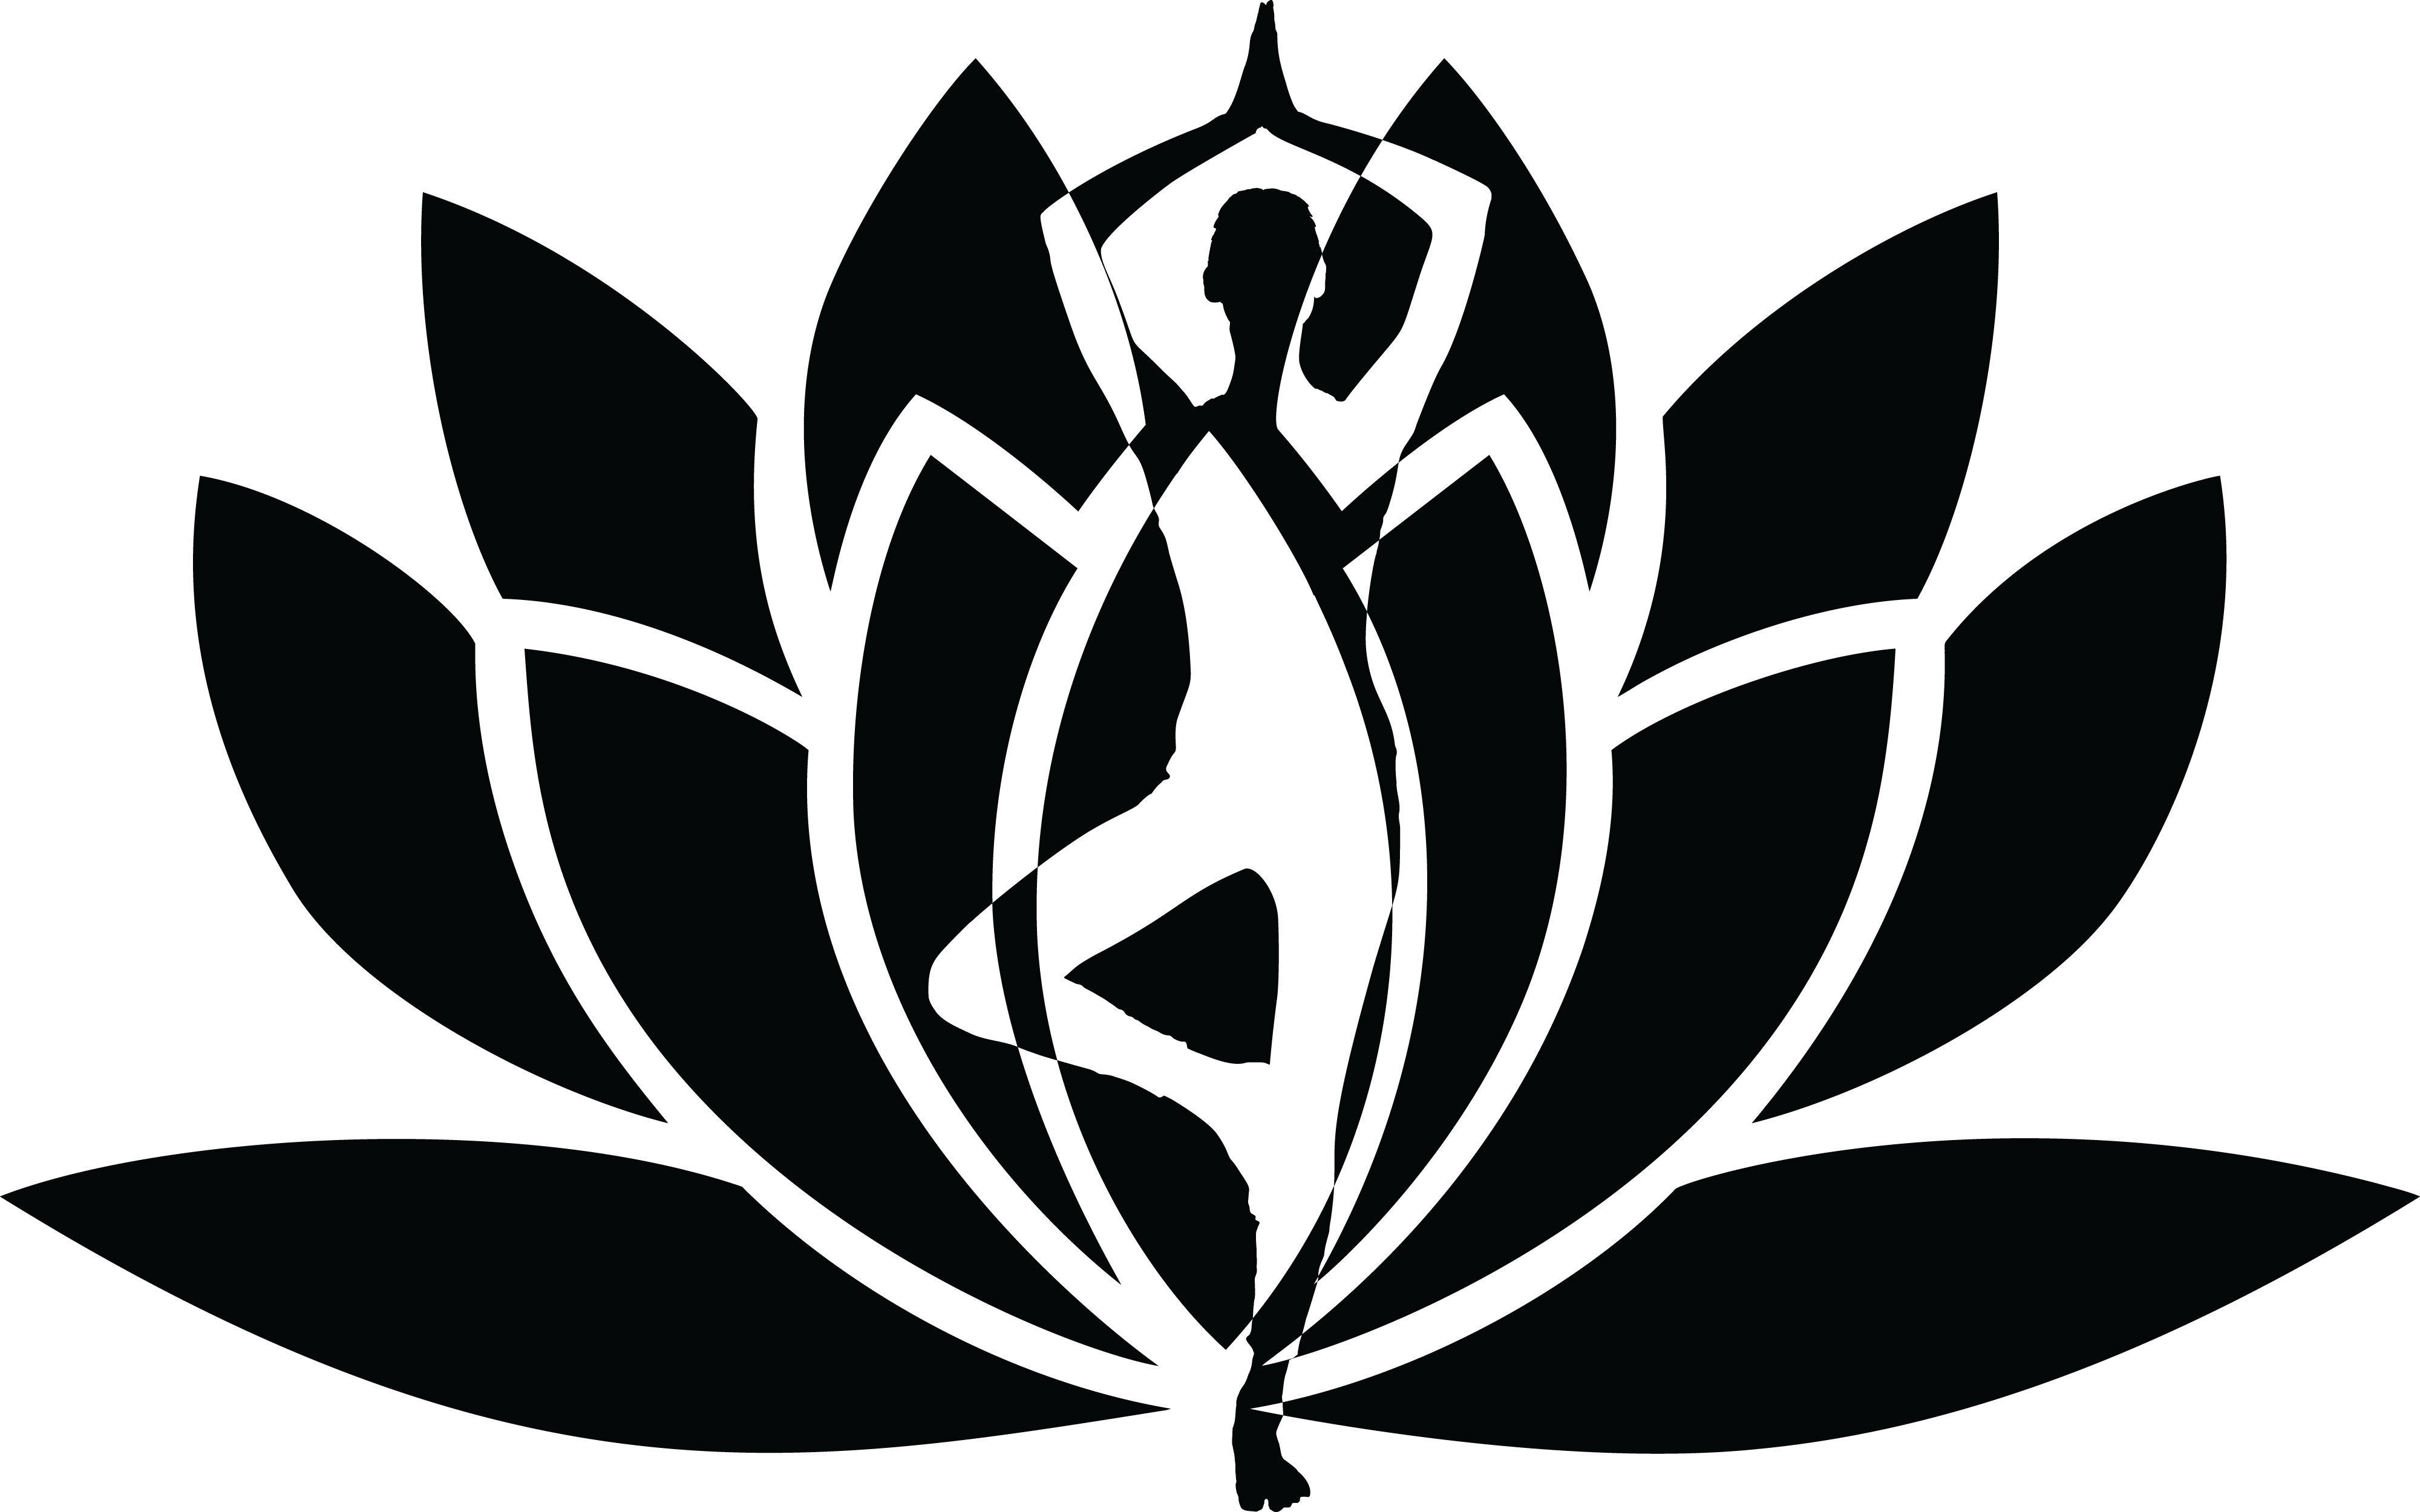 Free clipart of a silhouetted woman doing yoga over a lotus flower free clipart of a silhouetted woman doing yoga over a lotus flower 0001976 izmirmasajfo